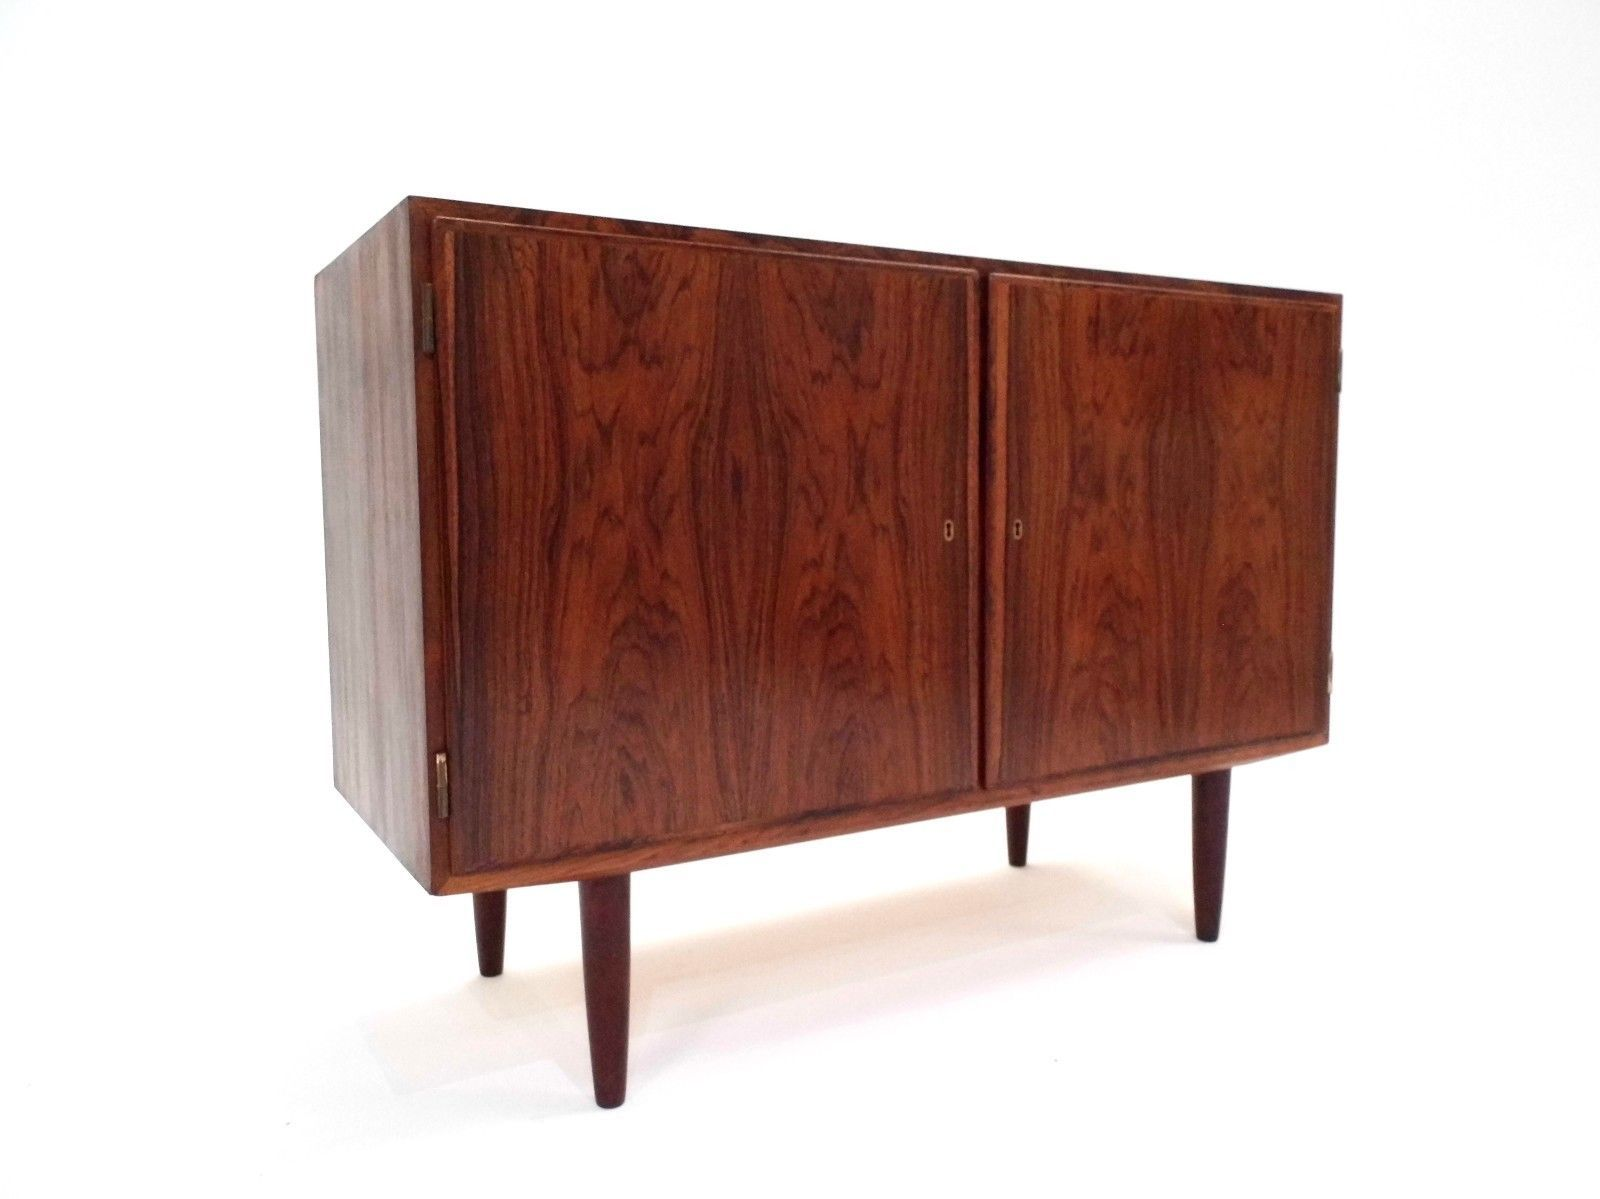 d nisches palisander sideboard von poul hundevad f r hundevad co 1960er bei pamono kaufen. Black Bedroom Furniture Sets. Home Design Ideas